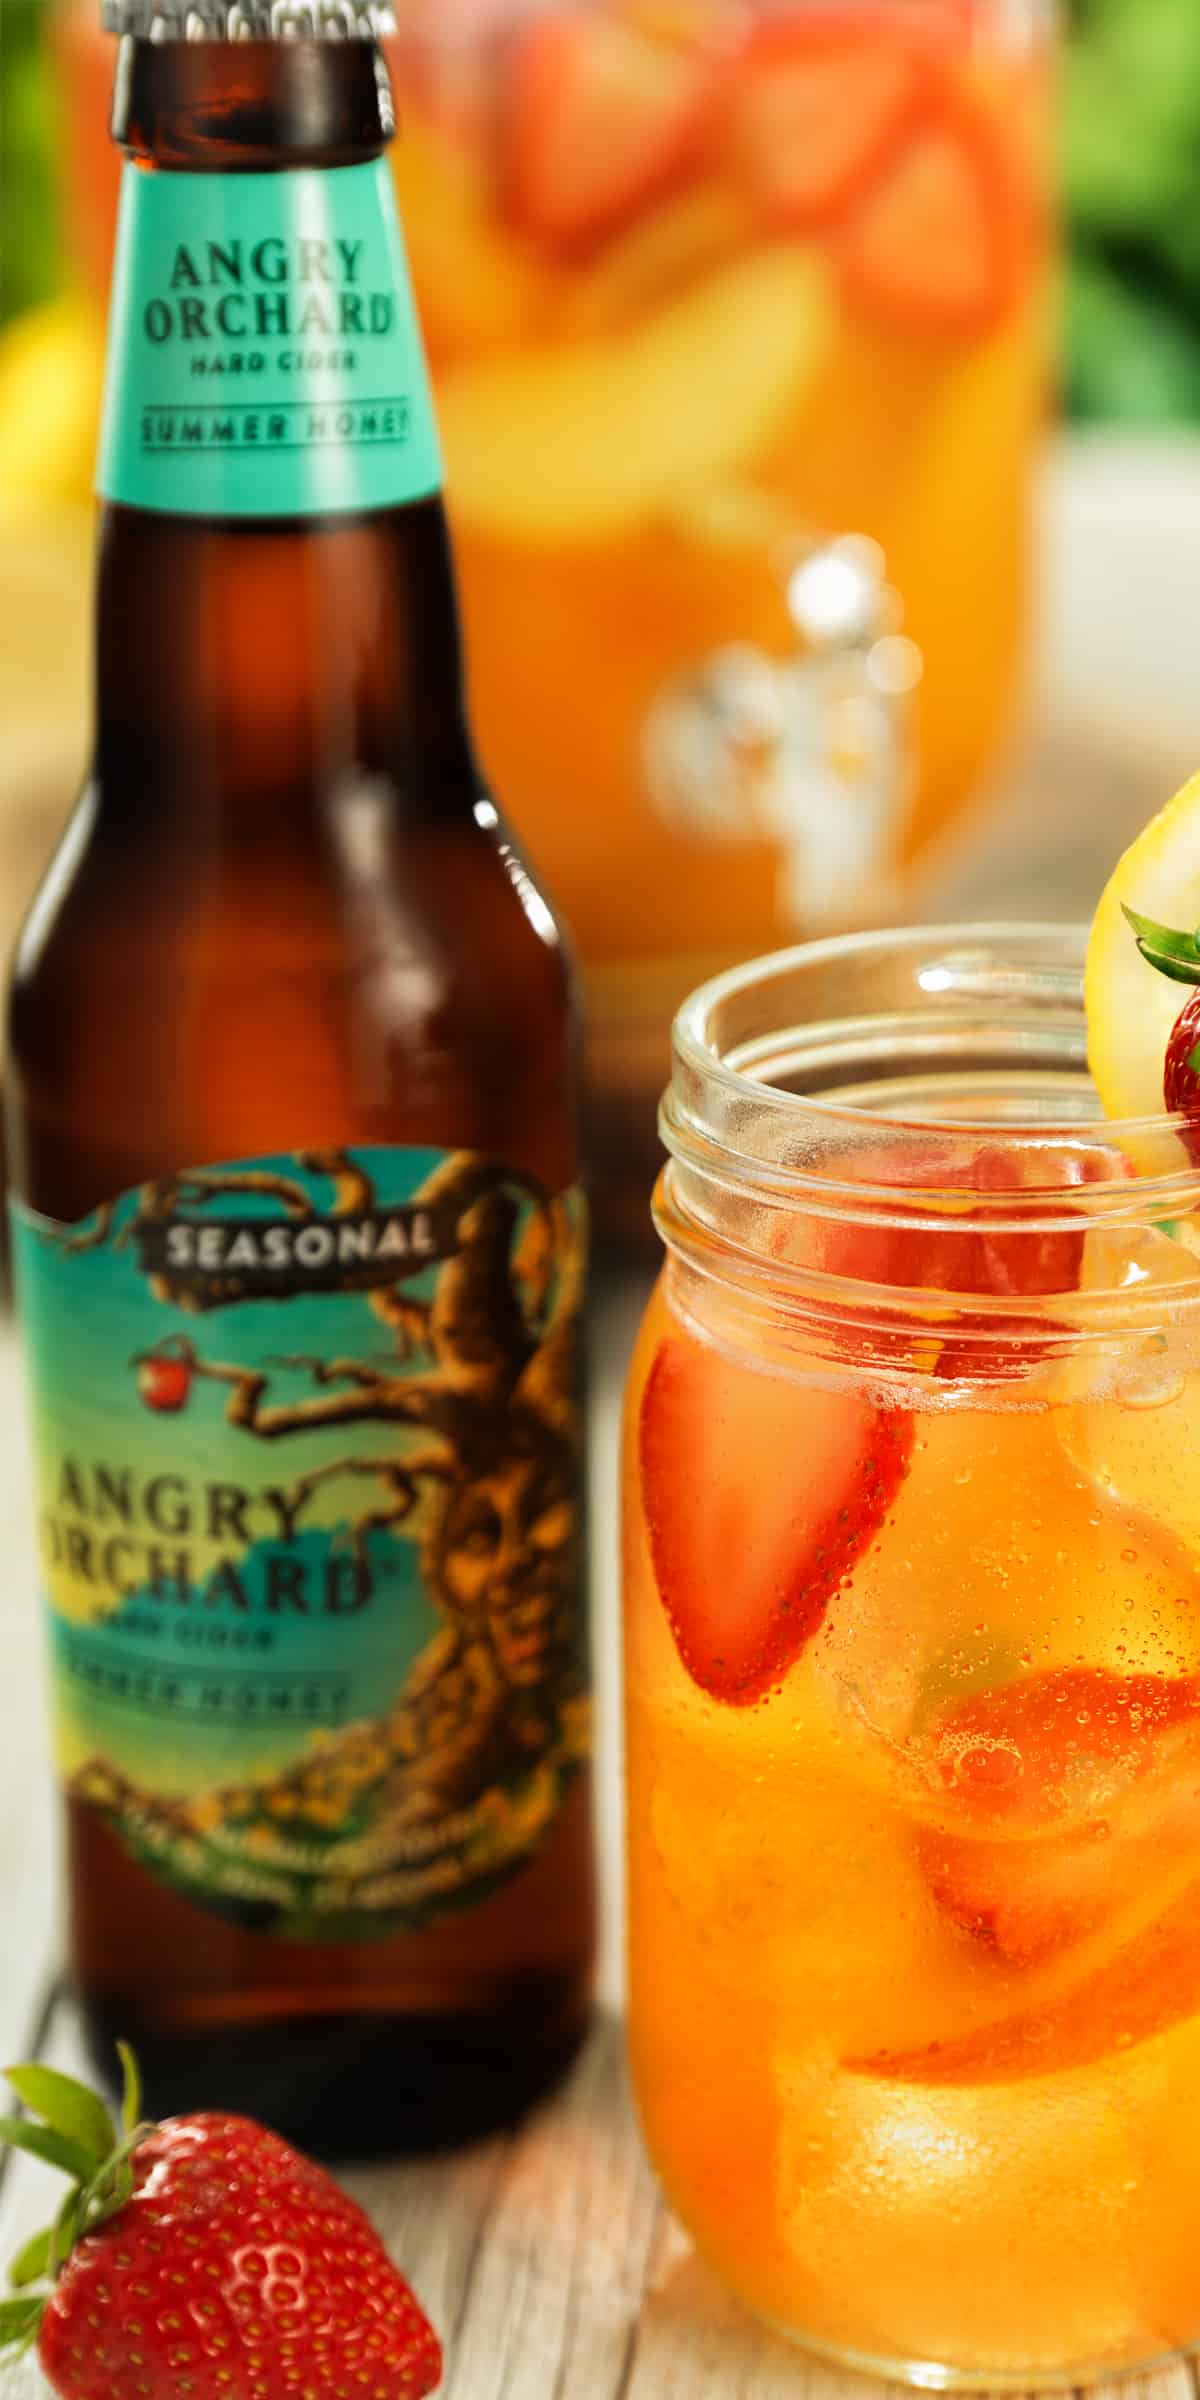 Angry Orchard beer bottle and party punch cocktail for guys